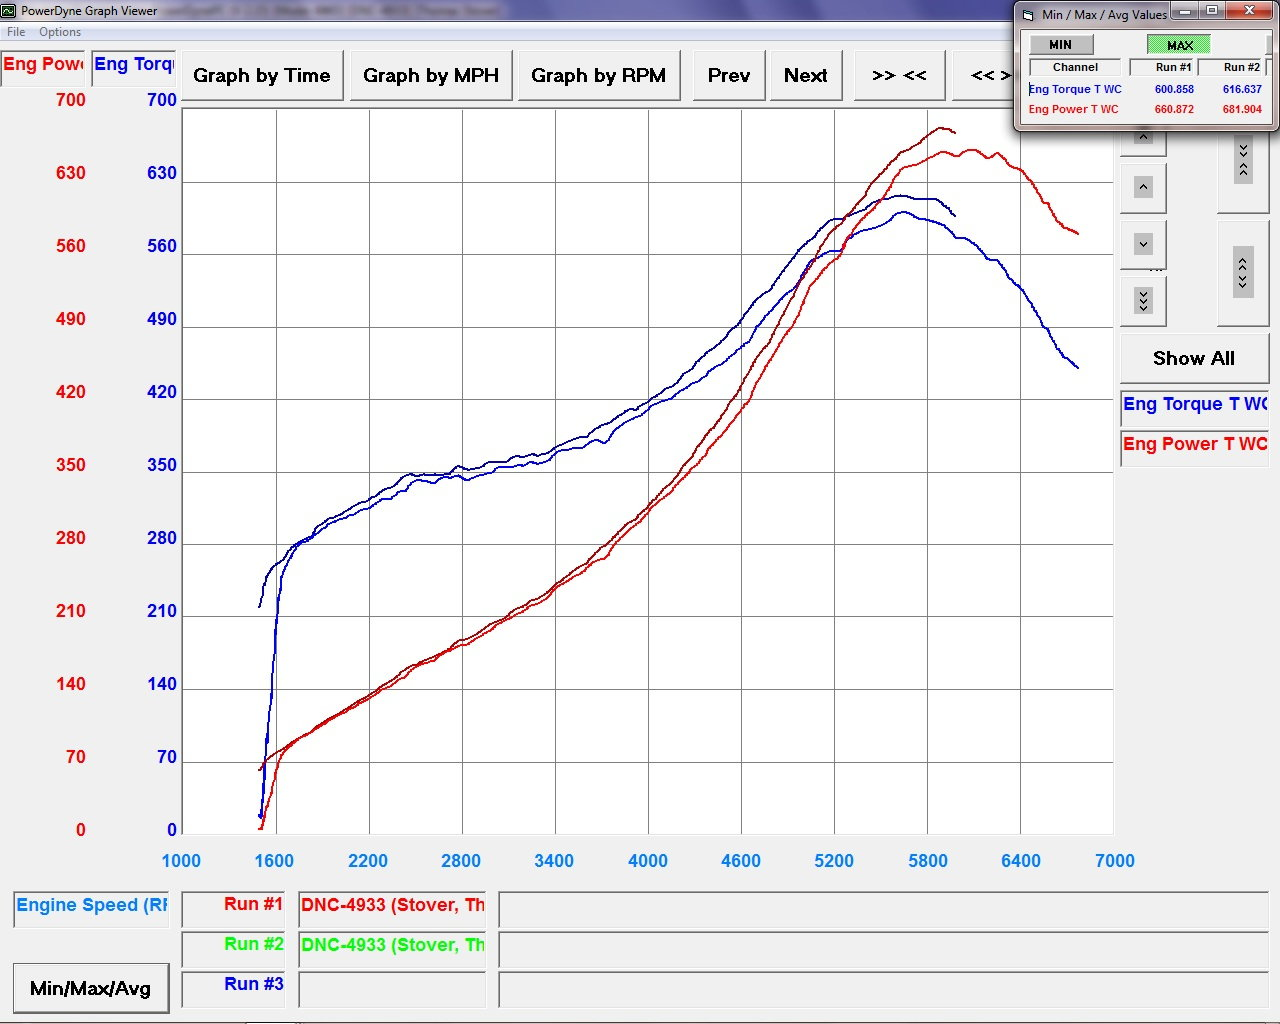 hight resolution of don t be fooled by the power curve shown boost controller wasn t set up properly which caused a very slow ramp rate